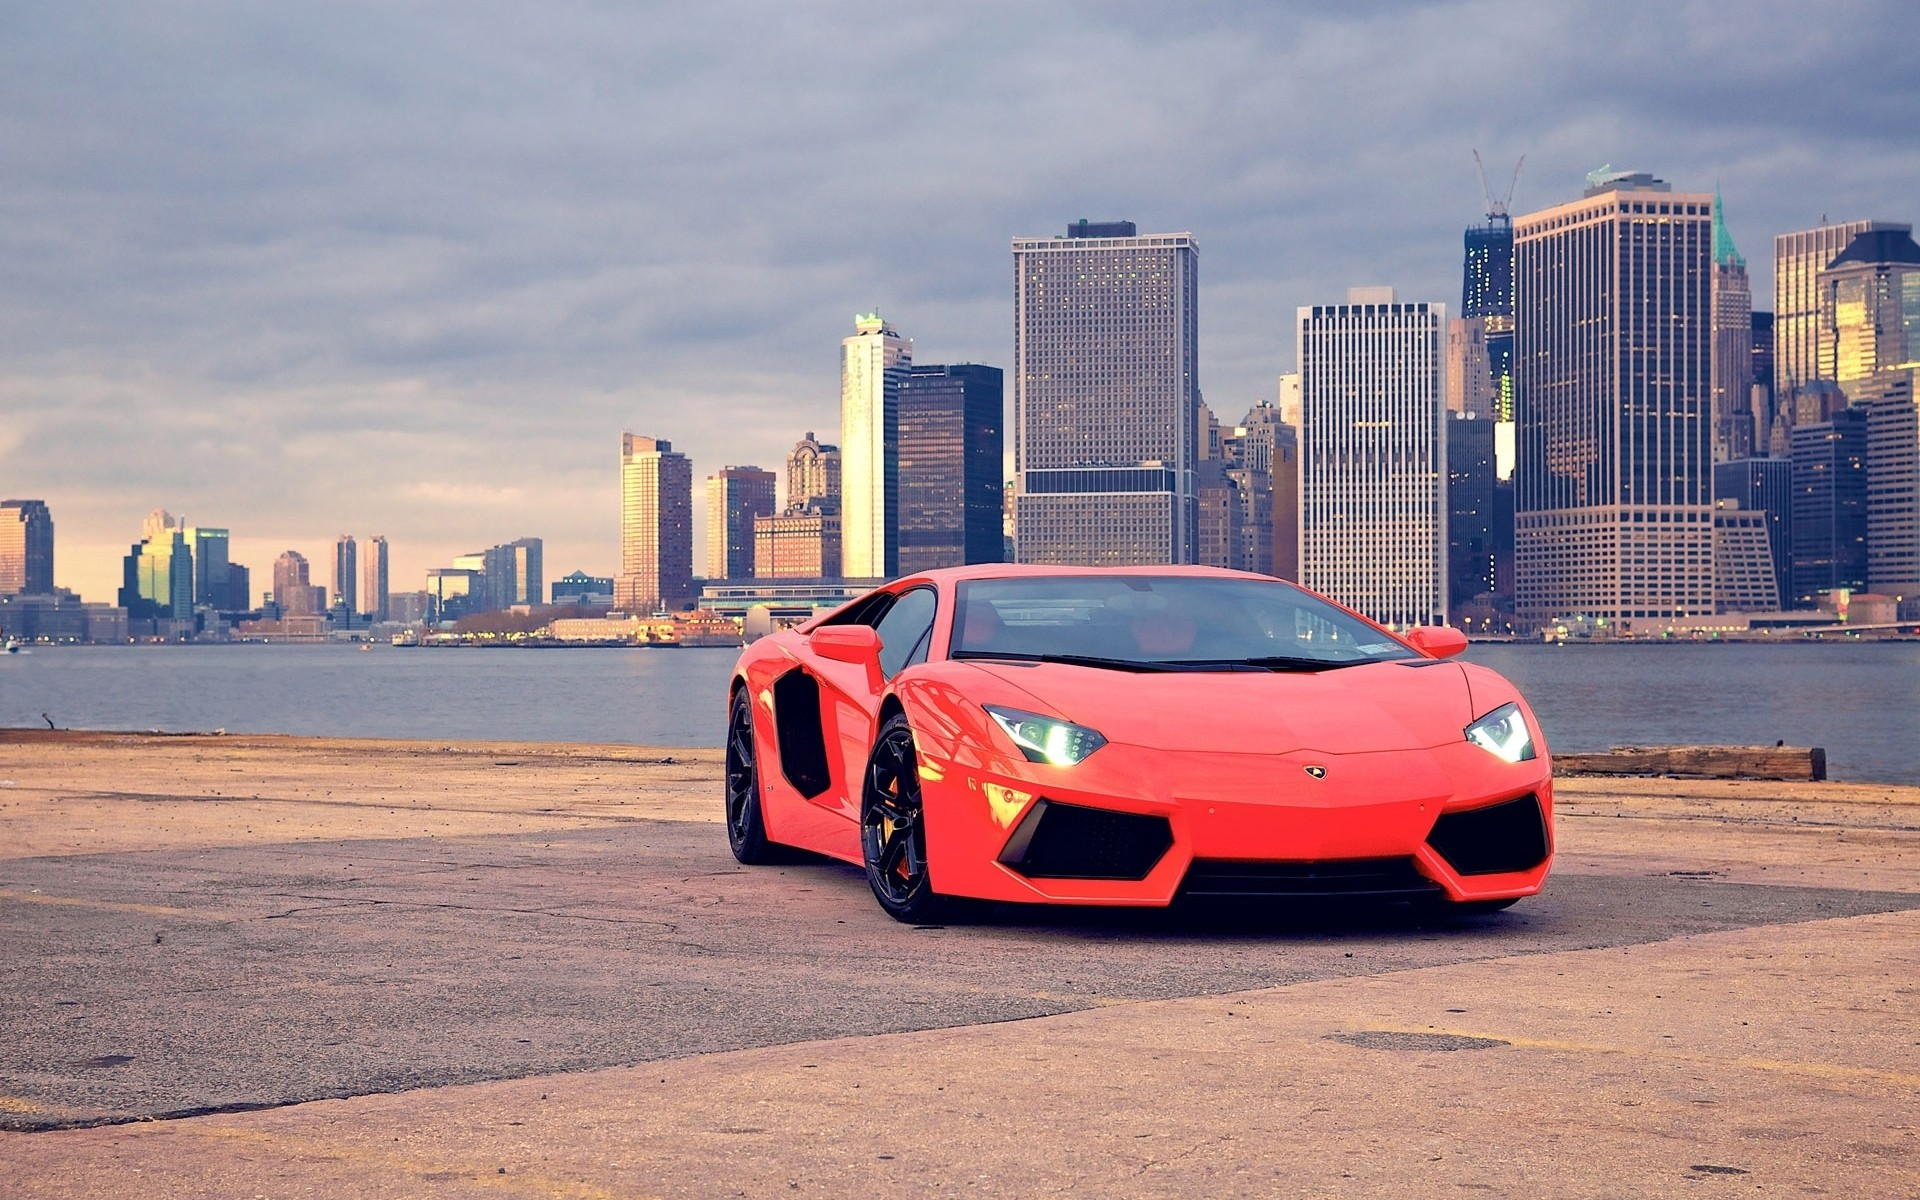 Lamborghini Car Wallpaper Hd Download Car Lamborghini Lamborghini Aventador City Cityscape